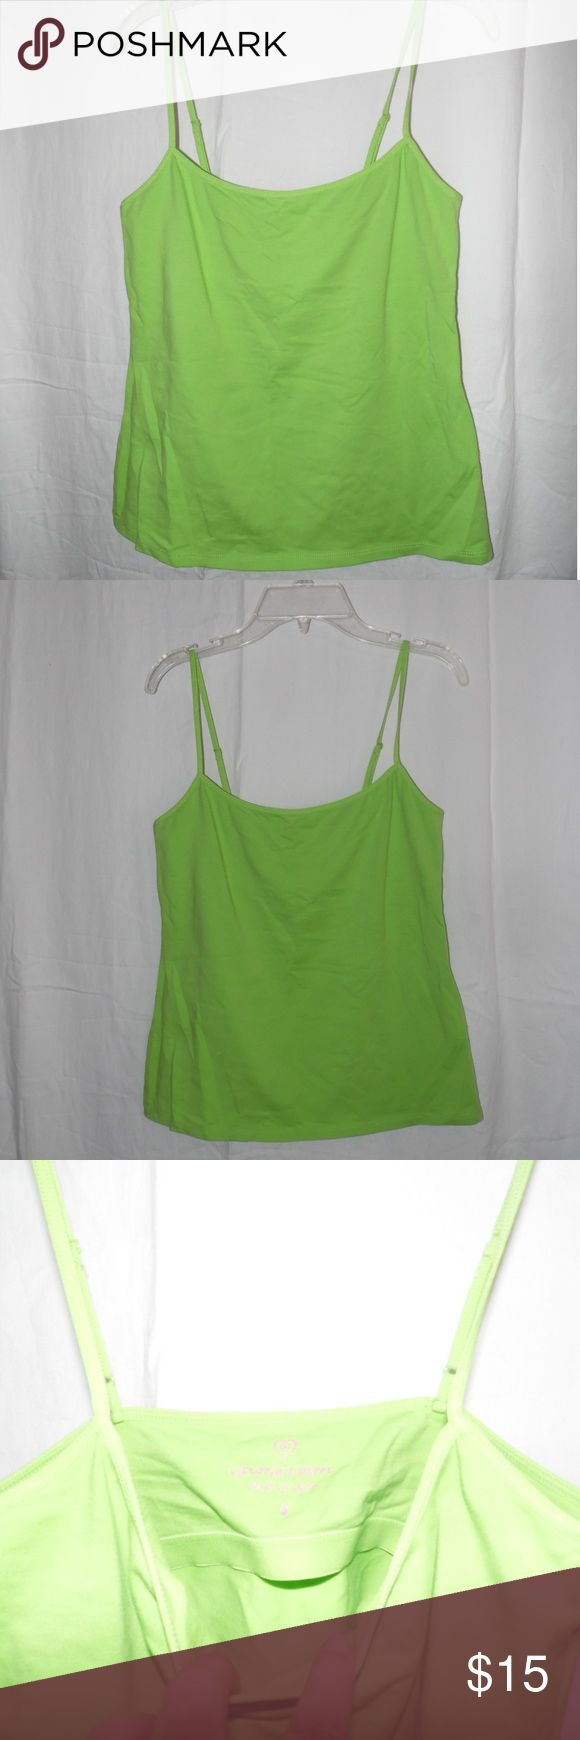 "Victoria's Secret Green Cami Small Great condition Victoria's Secret Green Cami Shirt Adjustable Strap with Built-in Bra Size Small arm pit to arm pit 14 1/2"" length from under arm to hem  14"" Victoria's Secret Tops Camisoles"